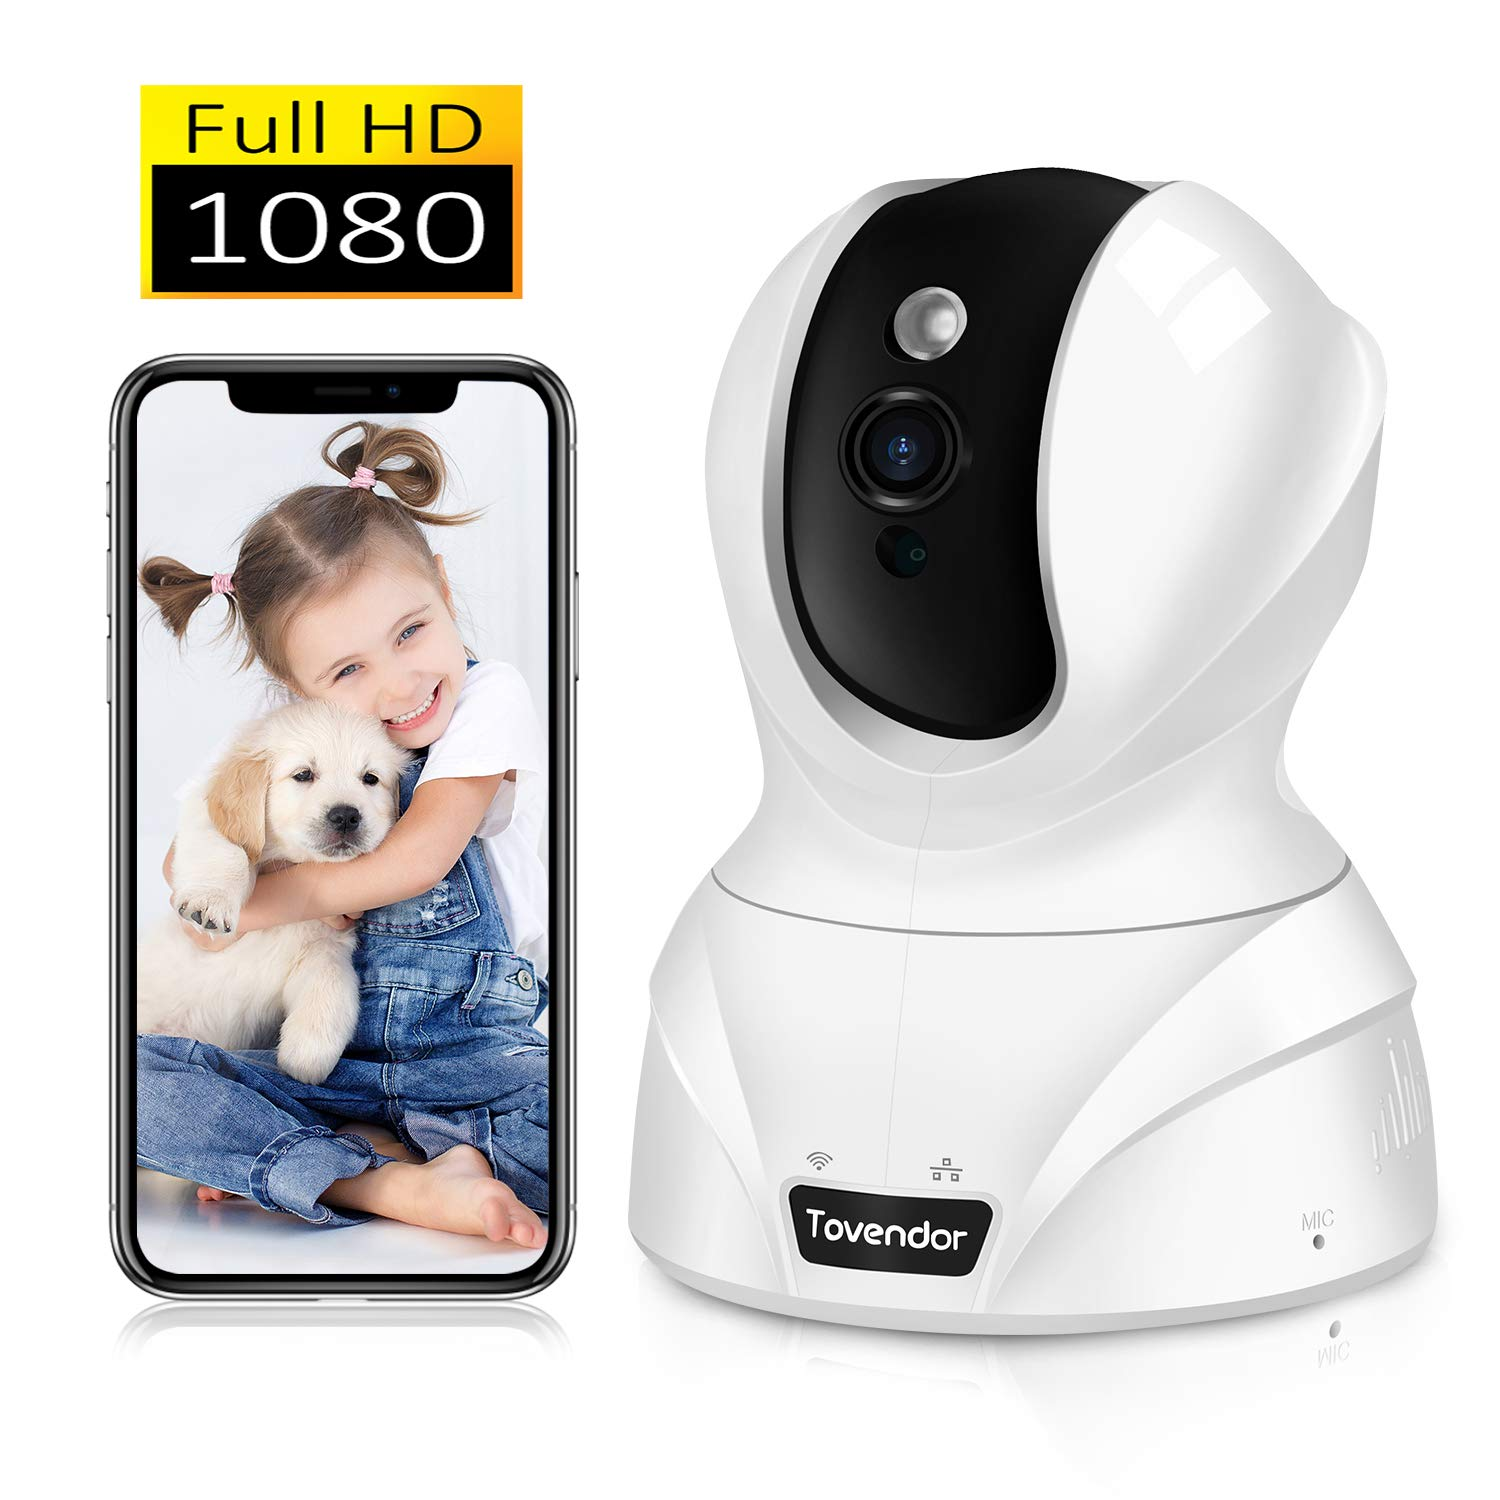 Tovendor Pet Dog Camera, 1080P Pan/Tilt/Zoom Monitor for Baby/Elderly/Nanny, Indoor Security Video Cloud Camera with IR Night Vision, 2 Way Talk